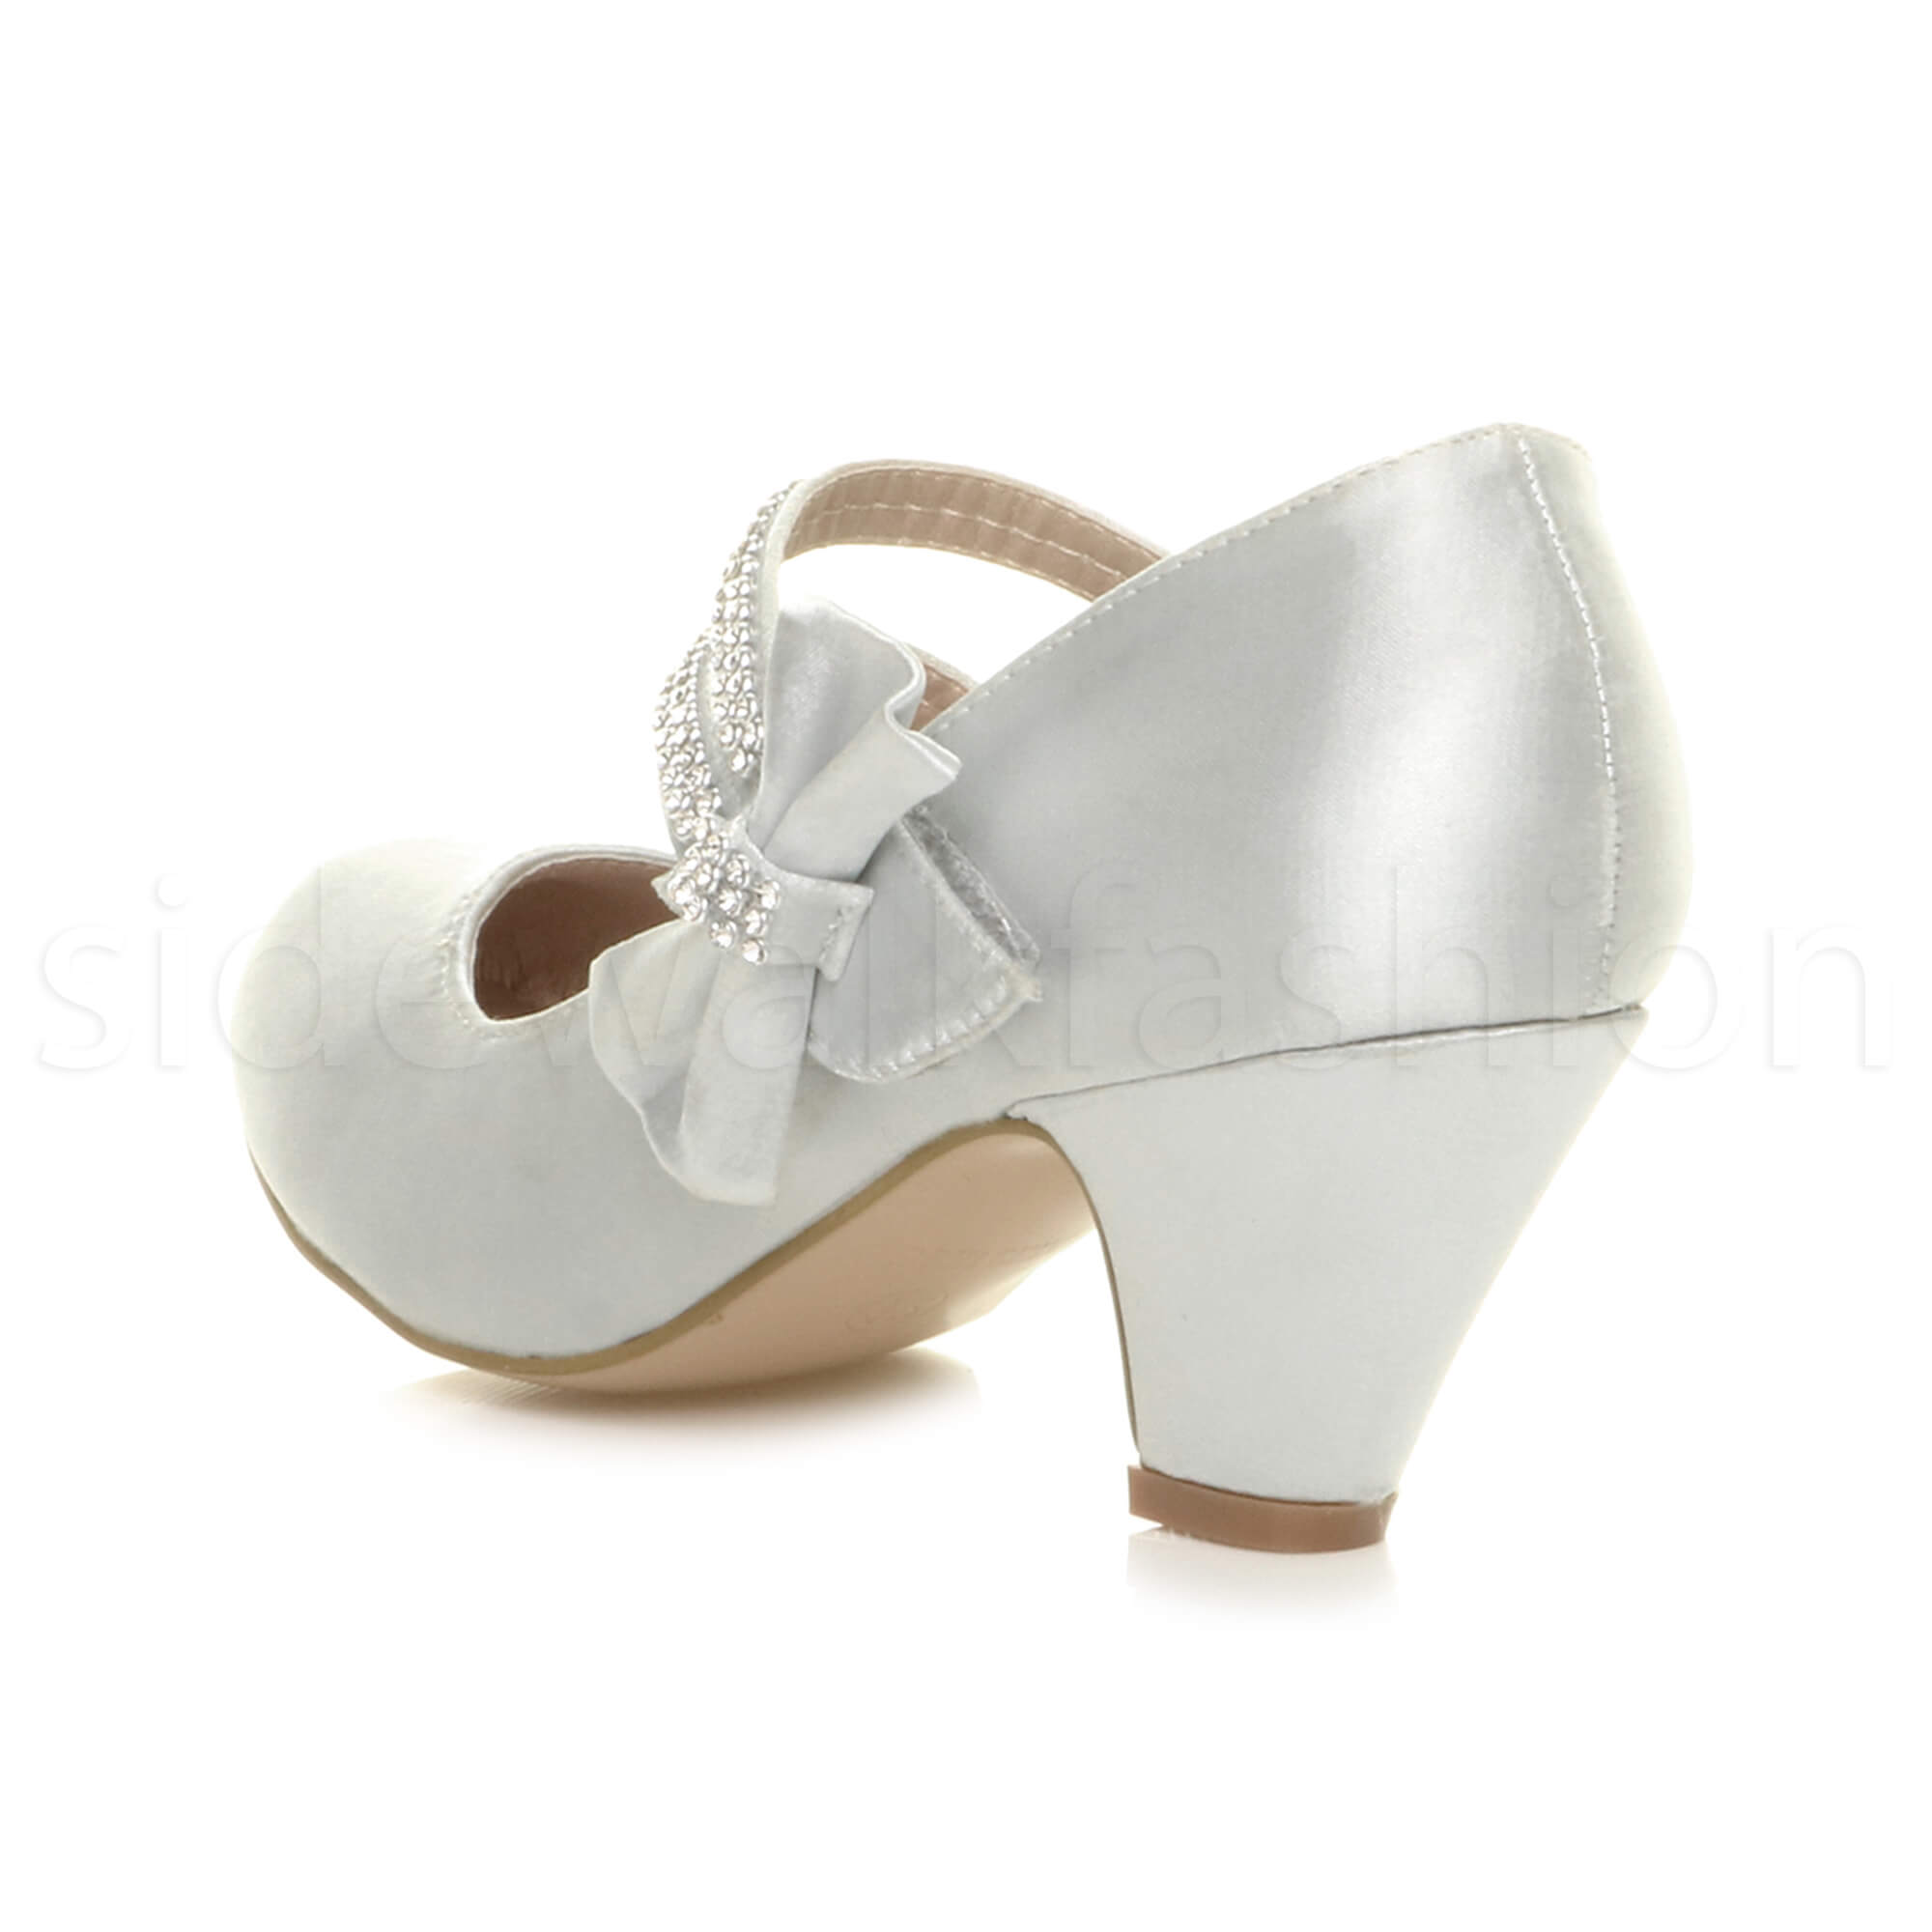 GIRLS-KIDS-CHILDRENS-LOW-HEEL-PARTY-MARY-JANE-STYLE-HOOK-LOOP-SANDALS-SHOES-SIZE